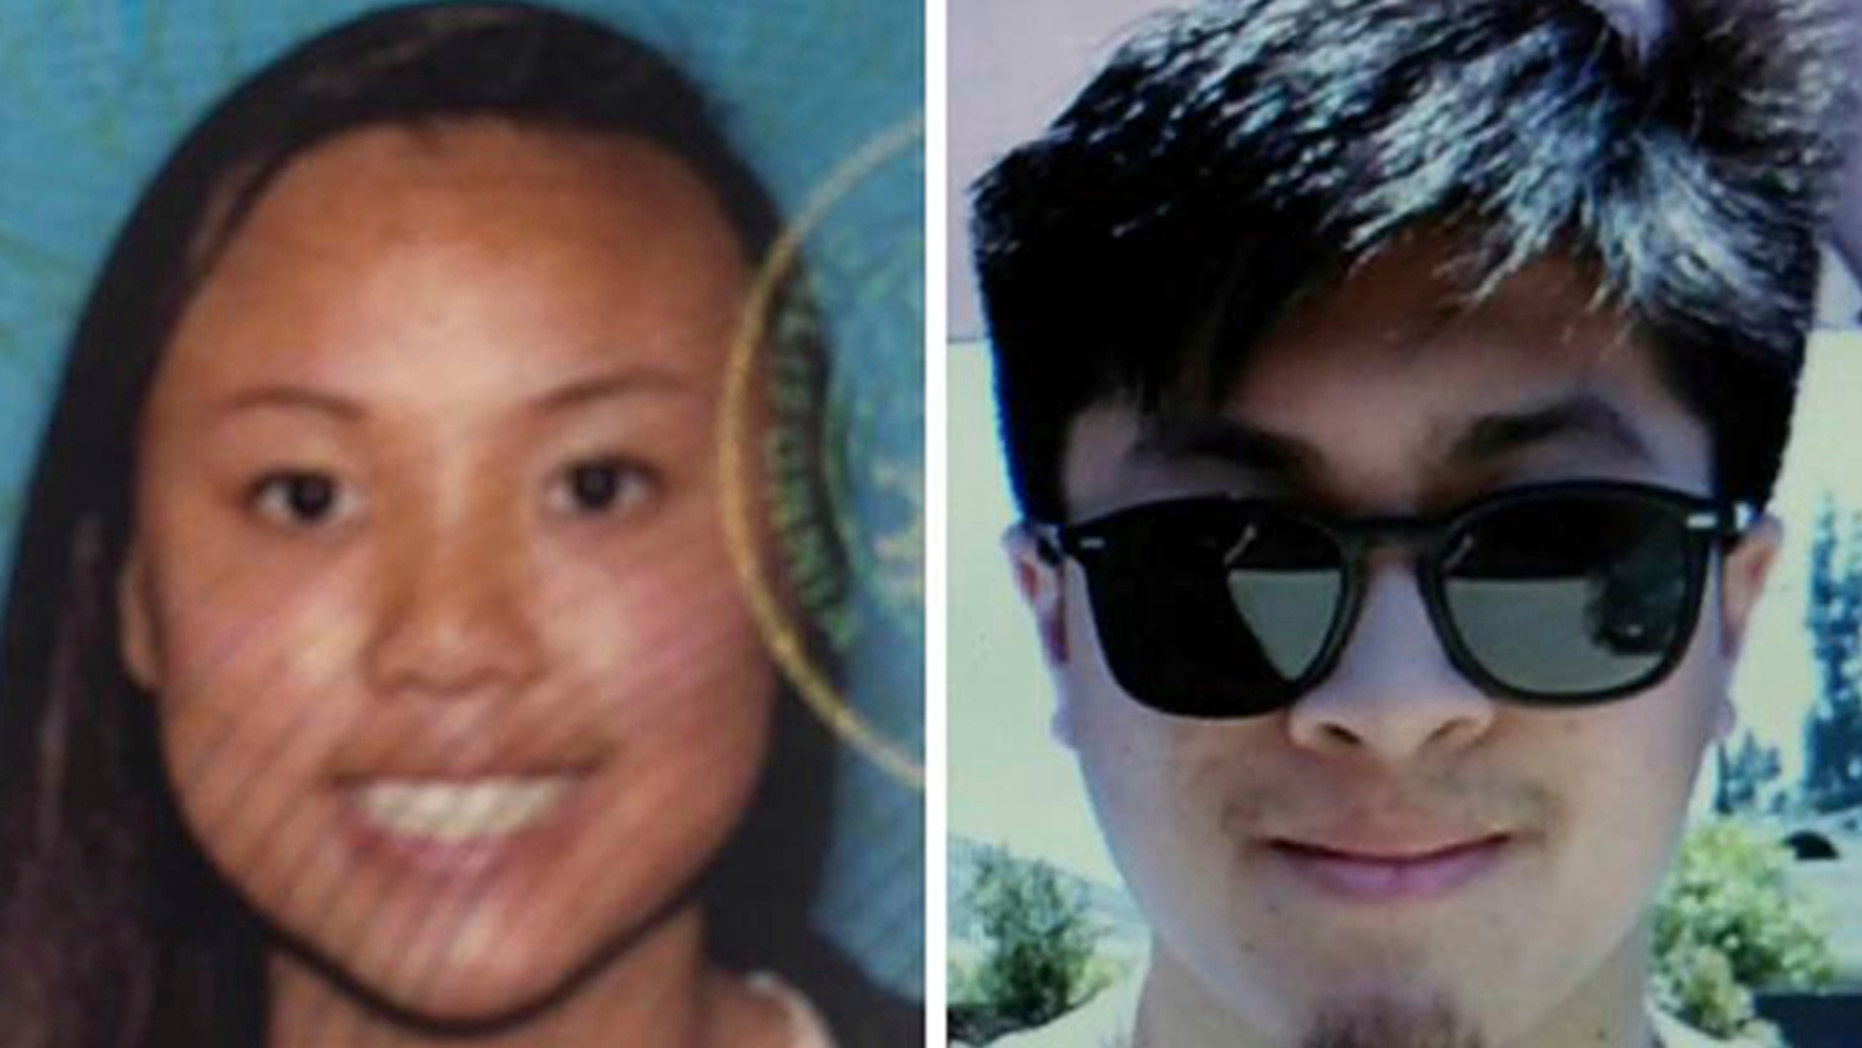 Investigators say Joseph Orbeso, right, shot and killed Rachel Nguyen in Joshua Tree National Park before turning the gun on himself